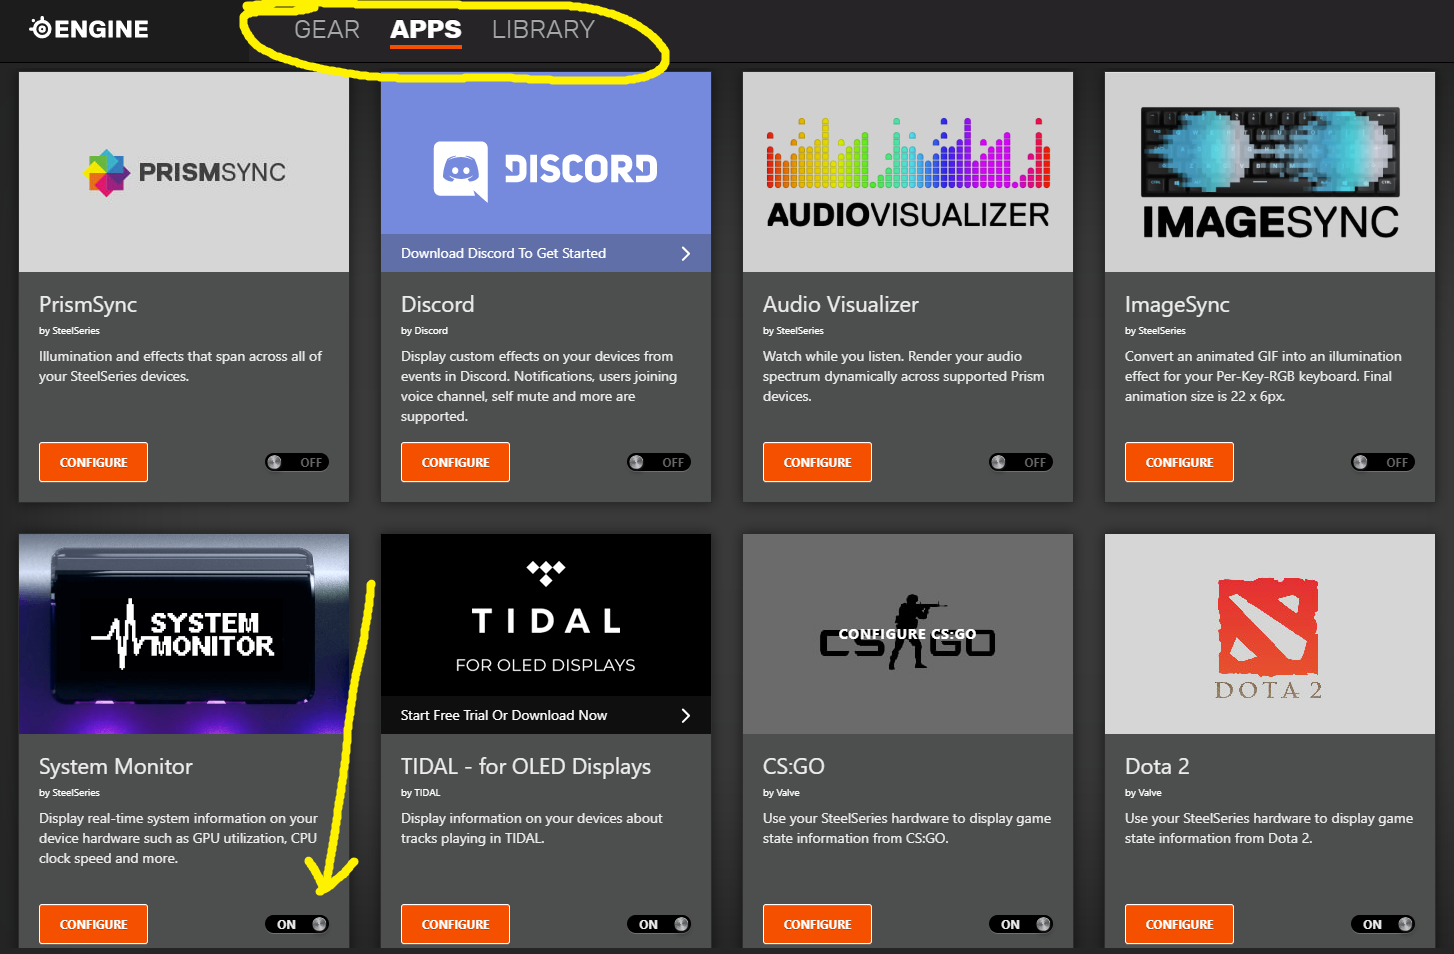 "SteelSeries Engine apps folder containing System Monitor, Discord, CS:GO, Dota 2, Audio Visualizer, and other apps. ""APPS"" is circled, and there's an arrow point to the location of System Monitor"